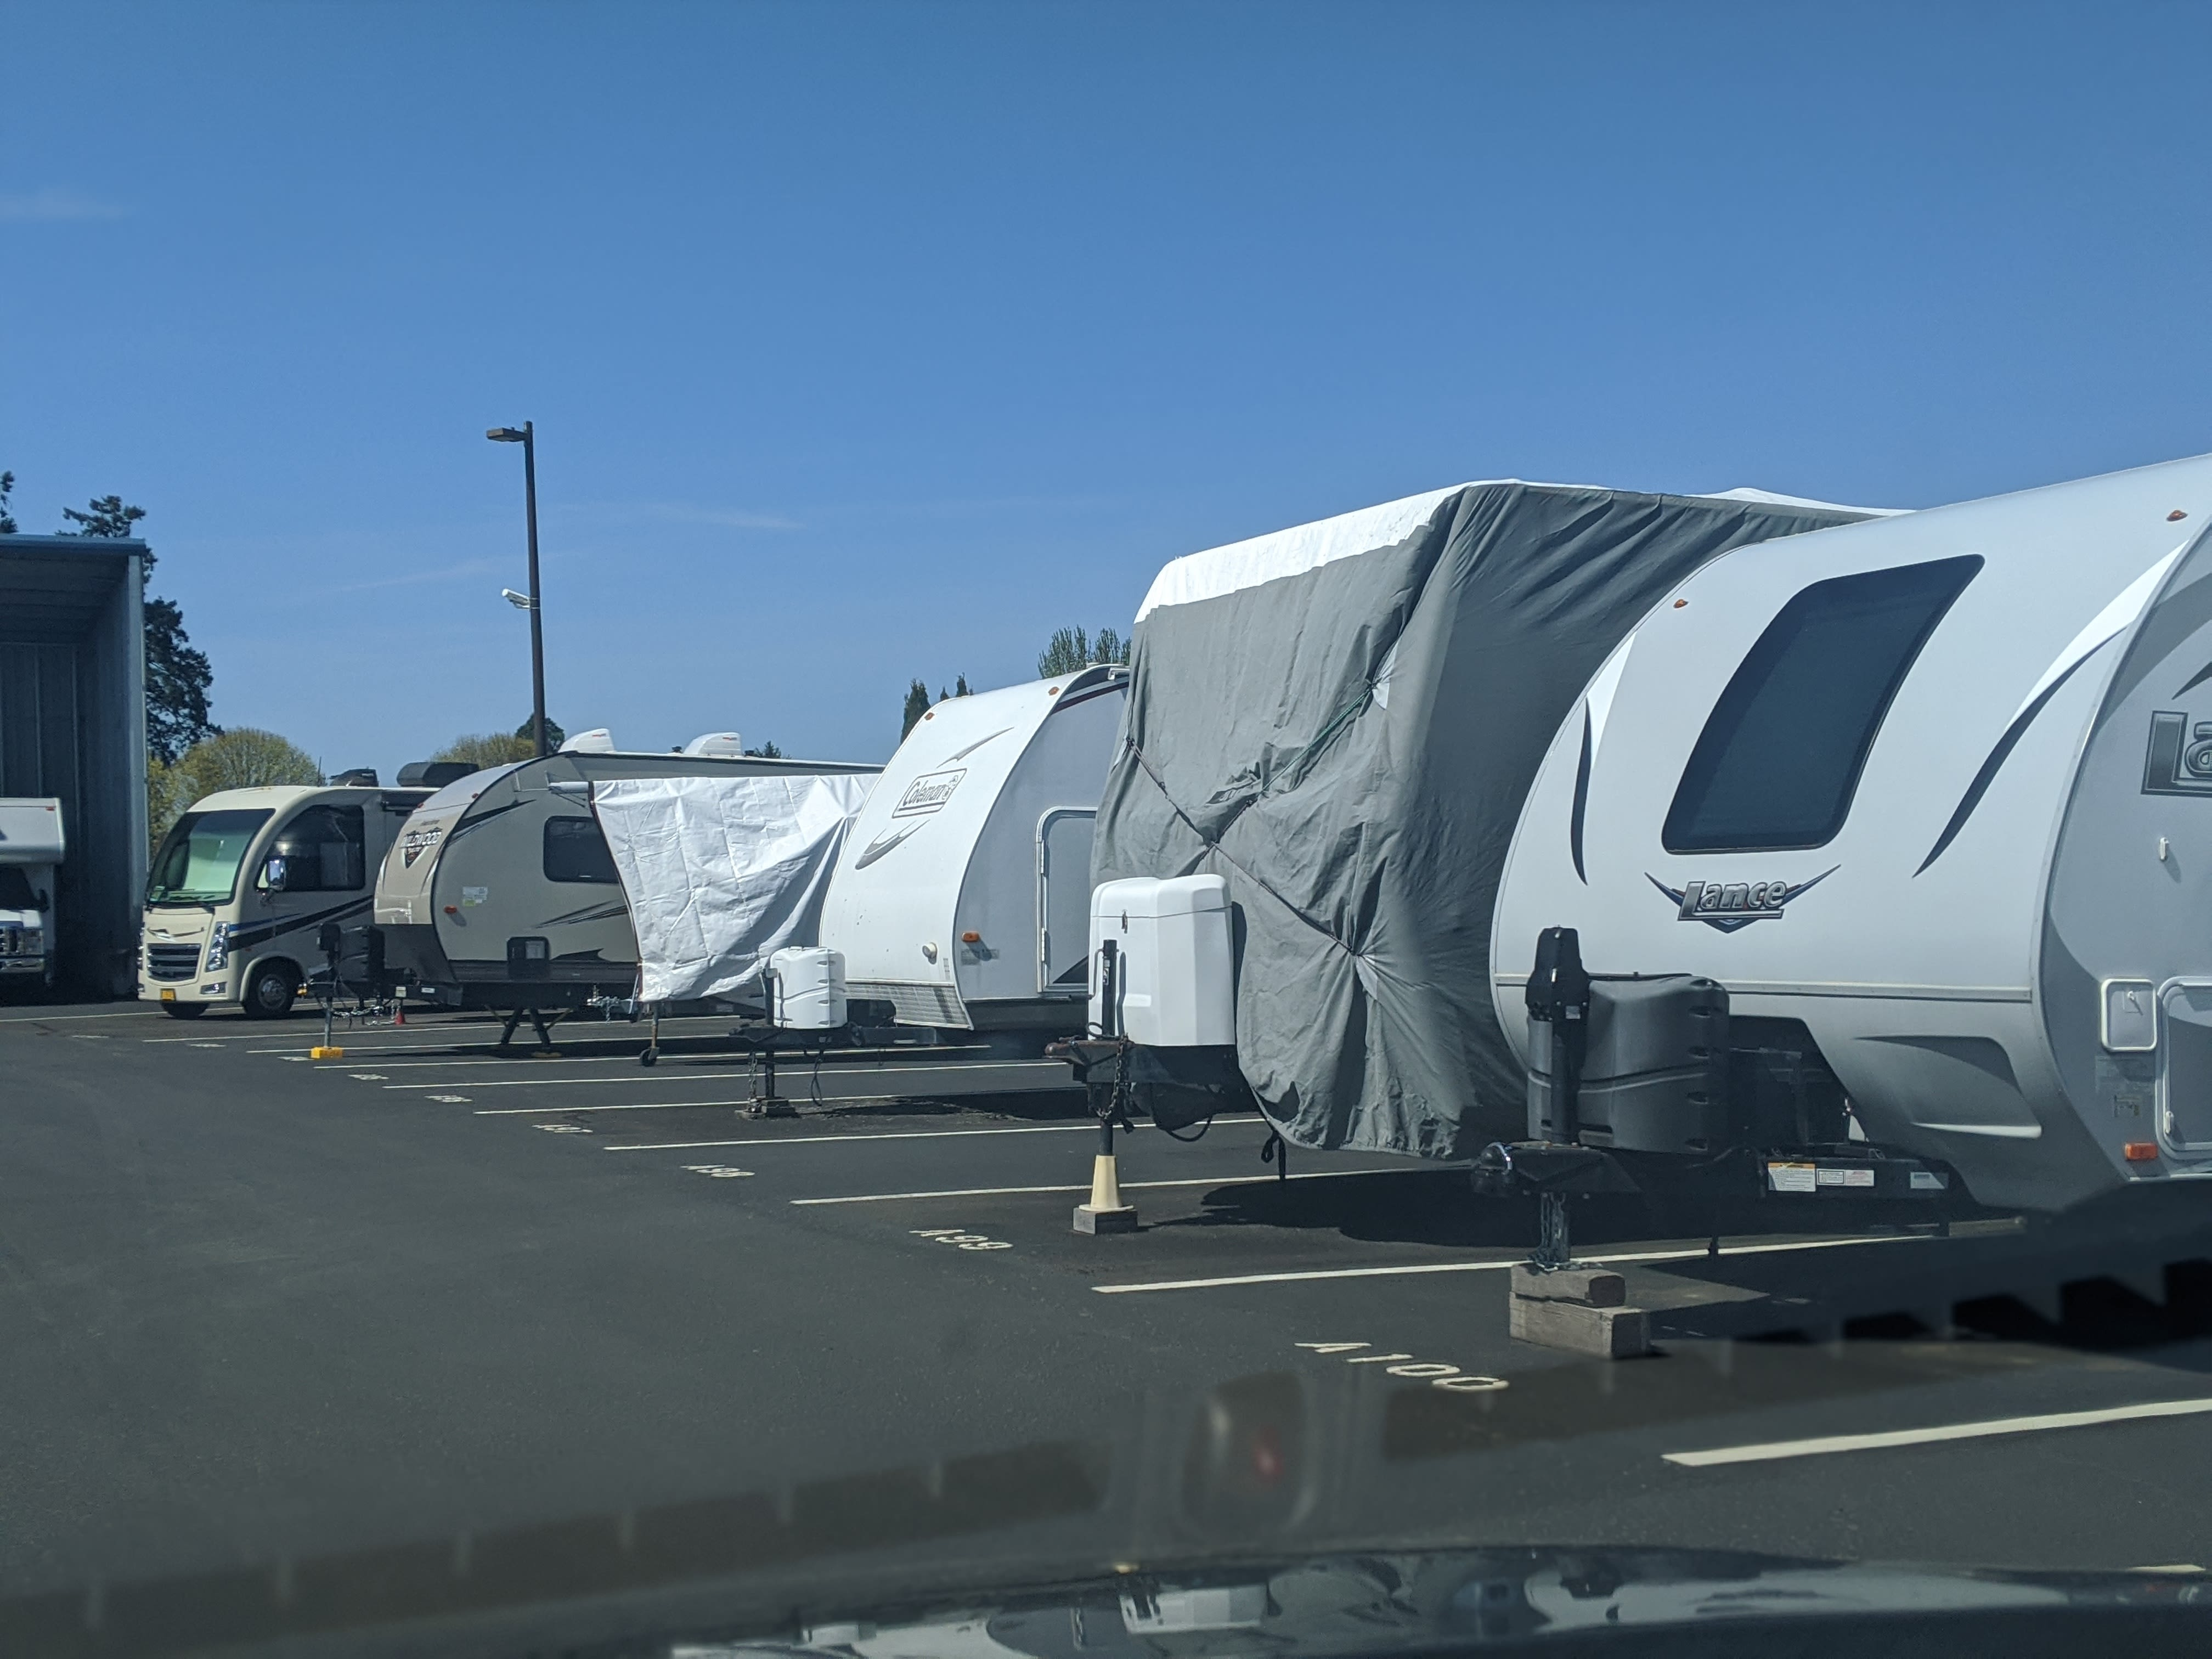 Canby RV & Boat Storage in Canby, Oregon